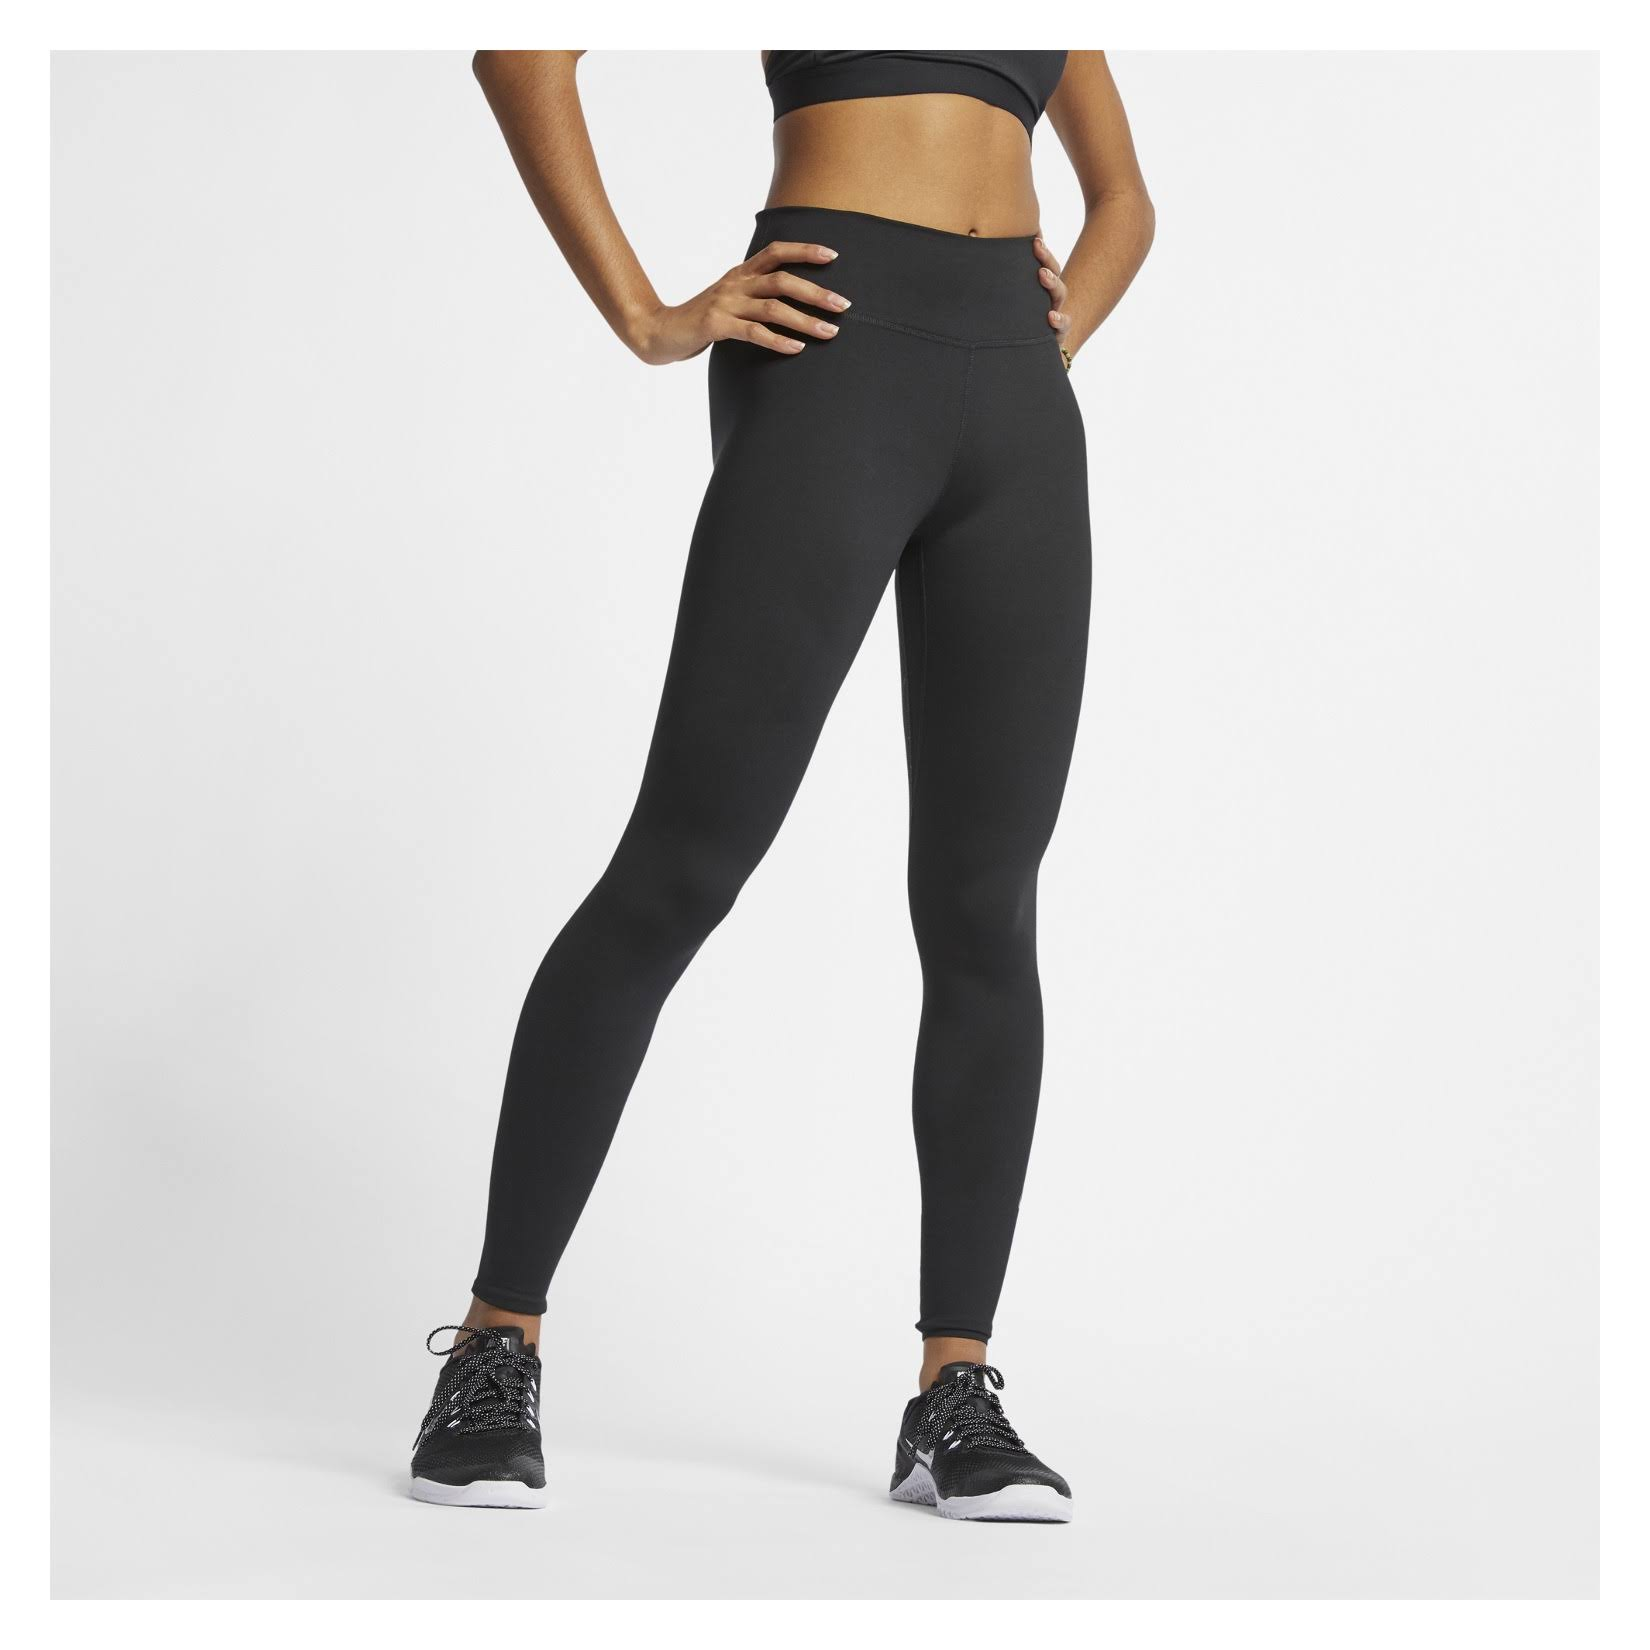 Nike One Luxe Women's Tights - Black